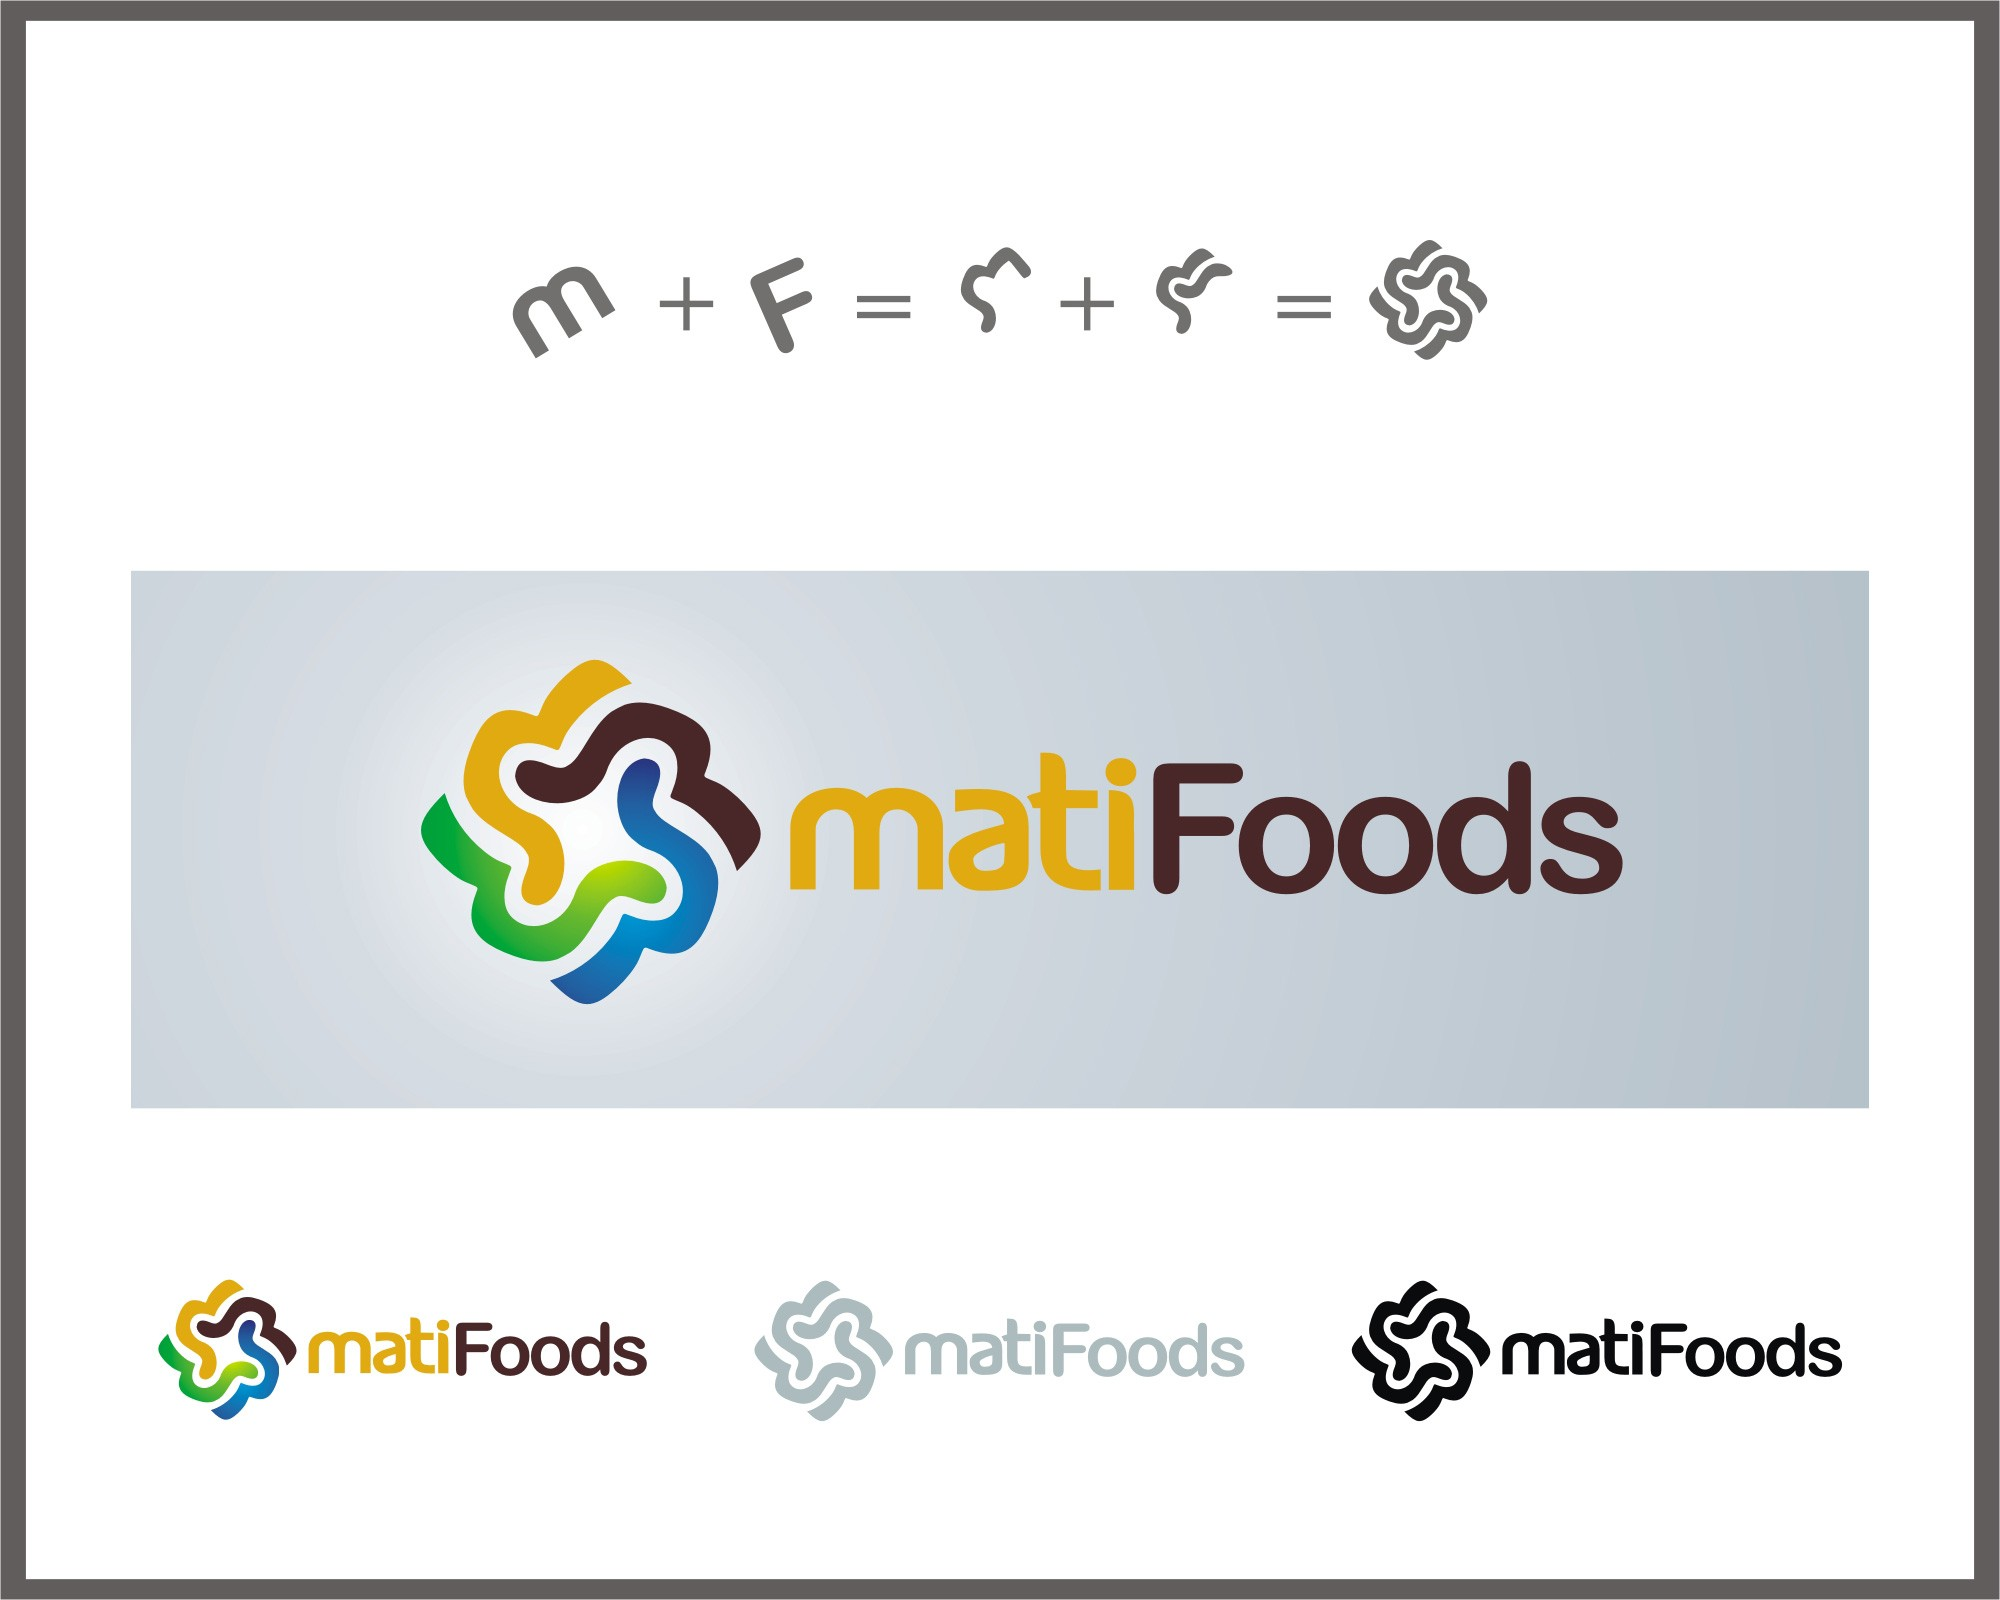 Create the next logo for Mati Foods